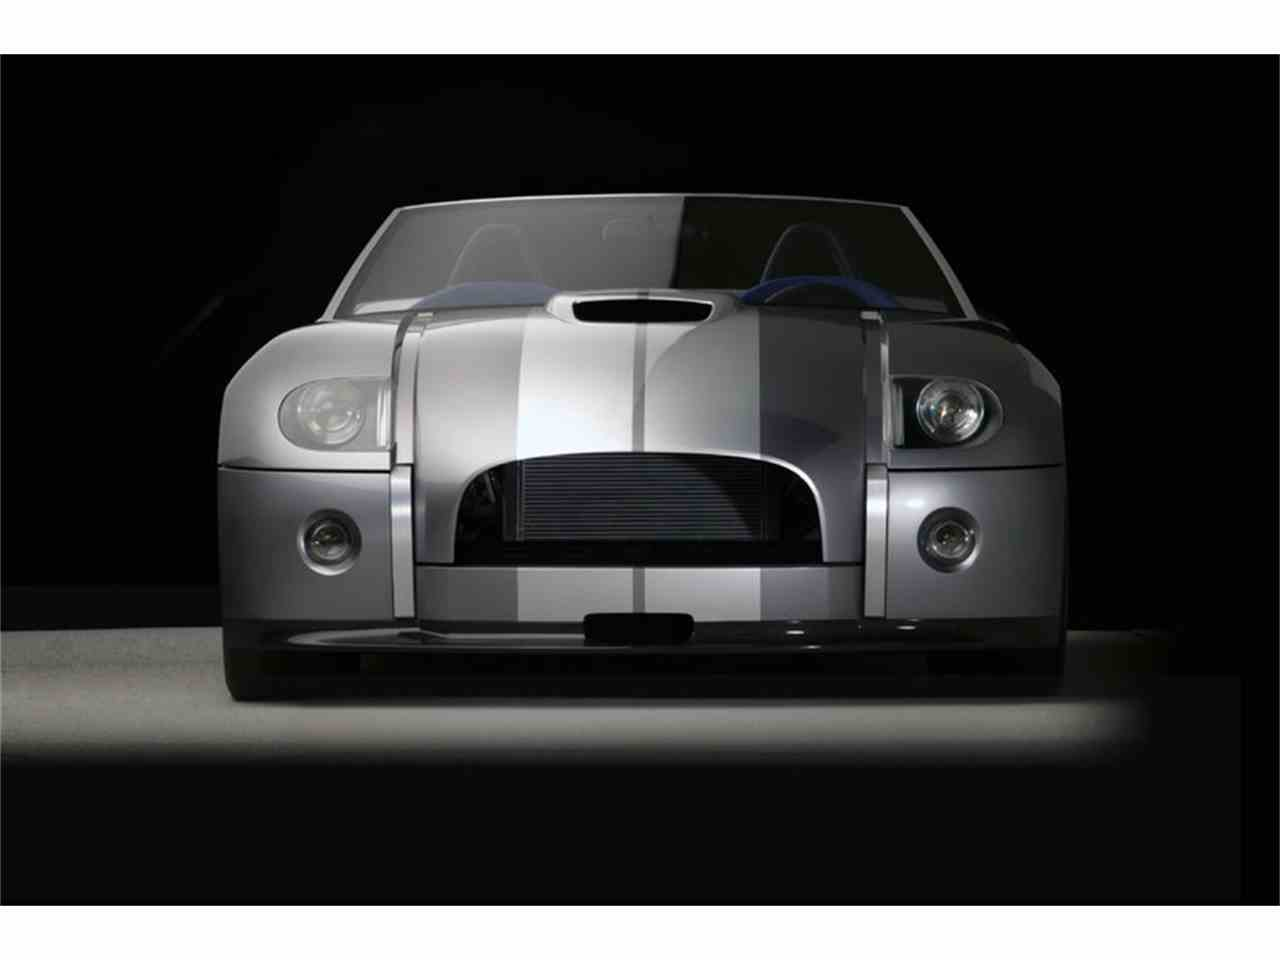 Large Picture of '04 Shelby Cobra Concept Car - LUBL